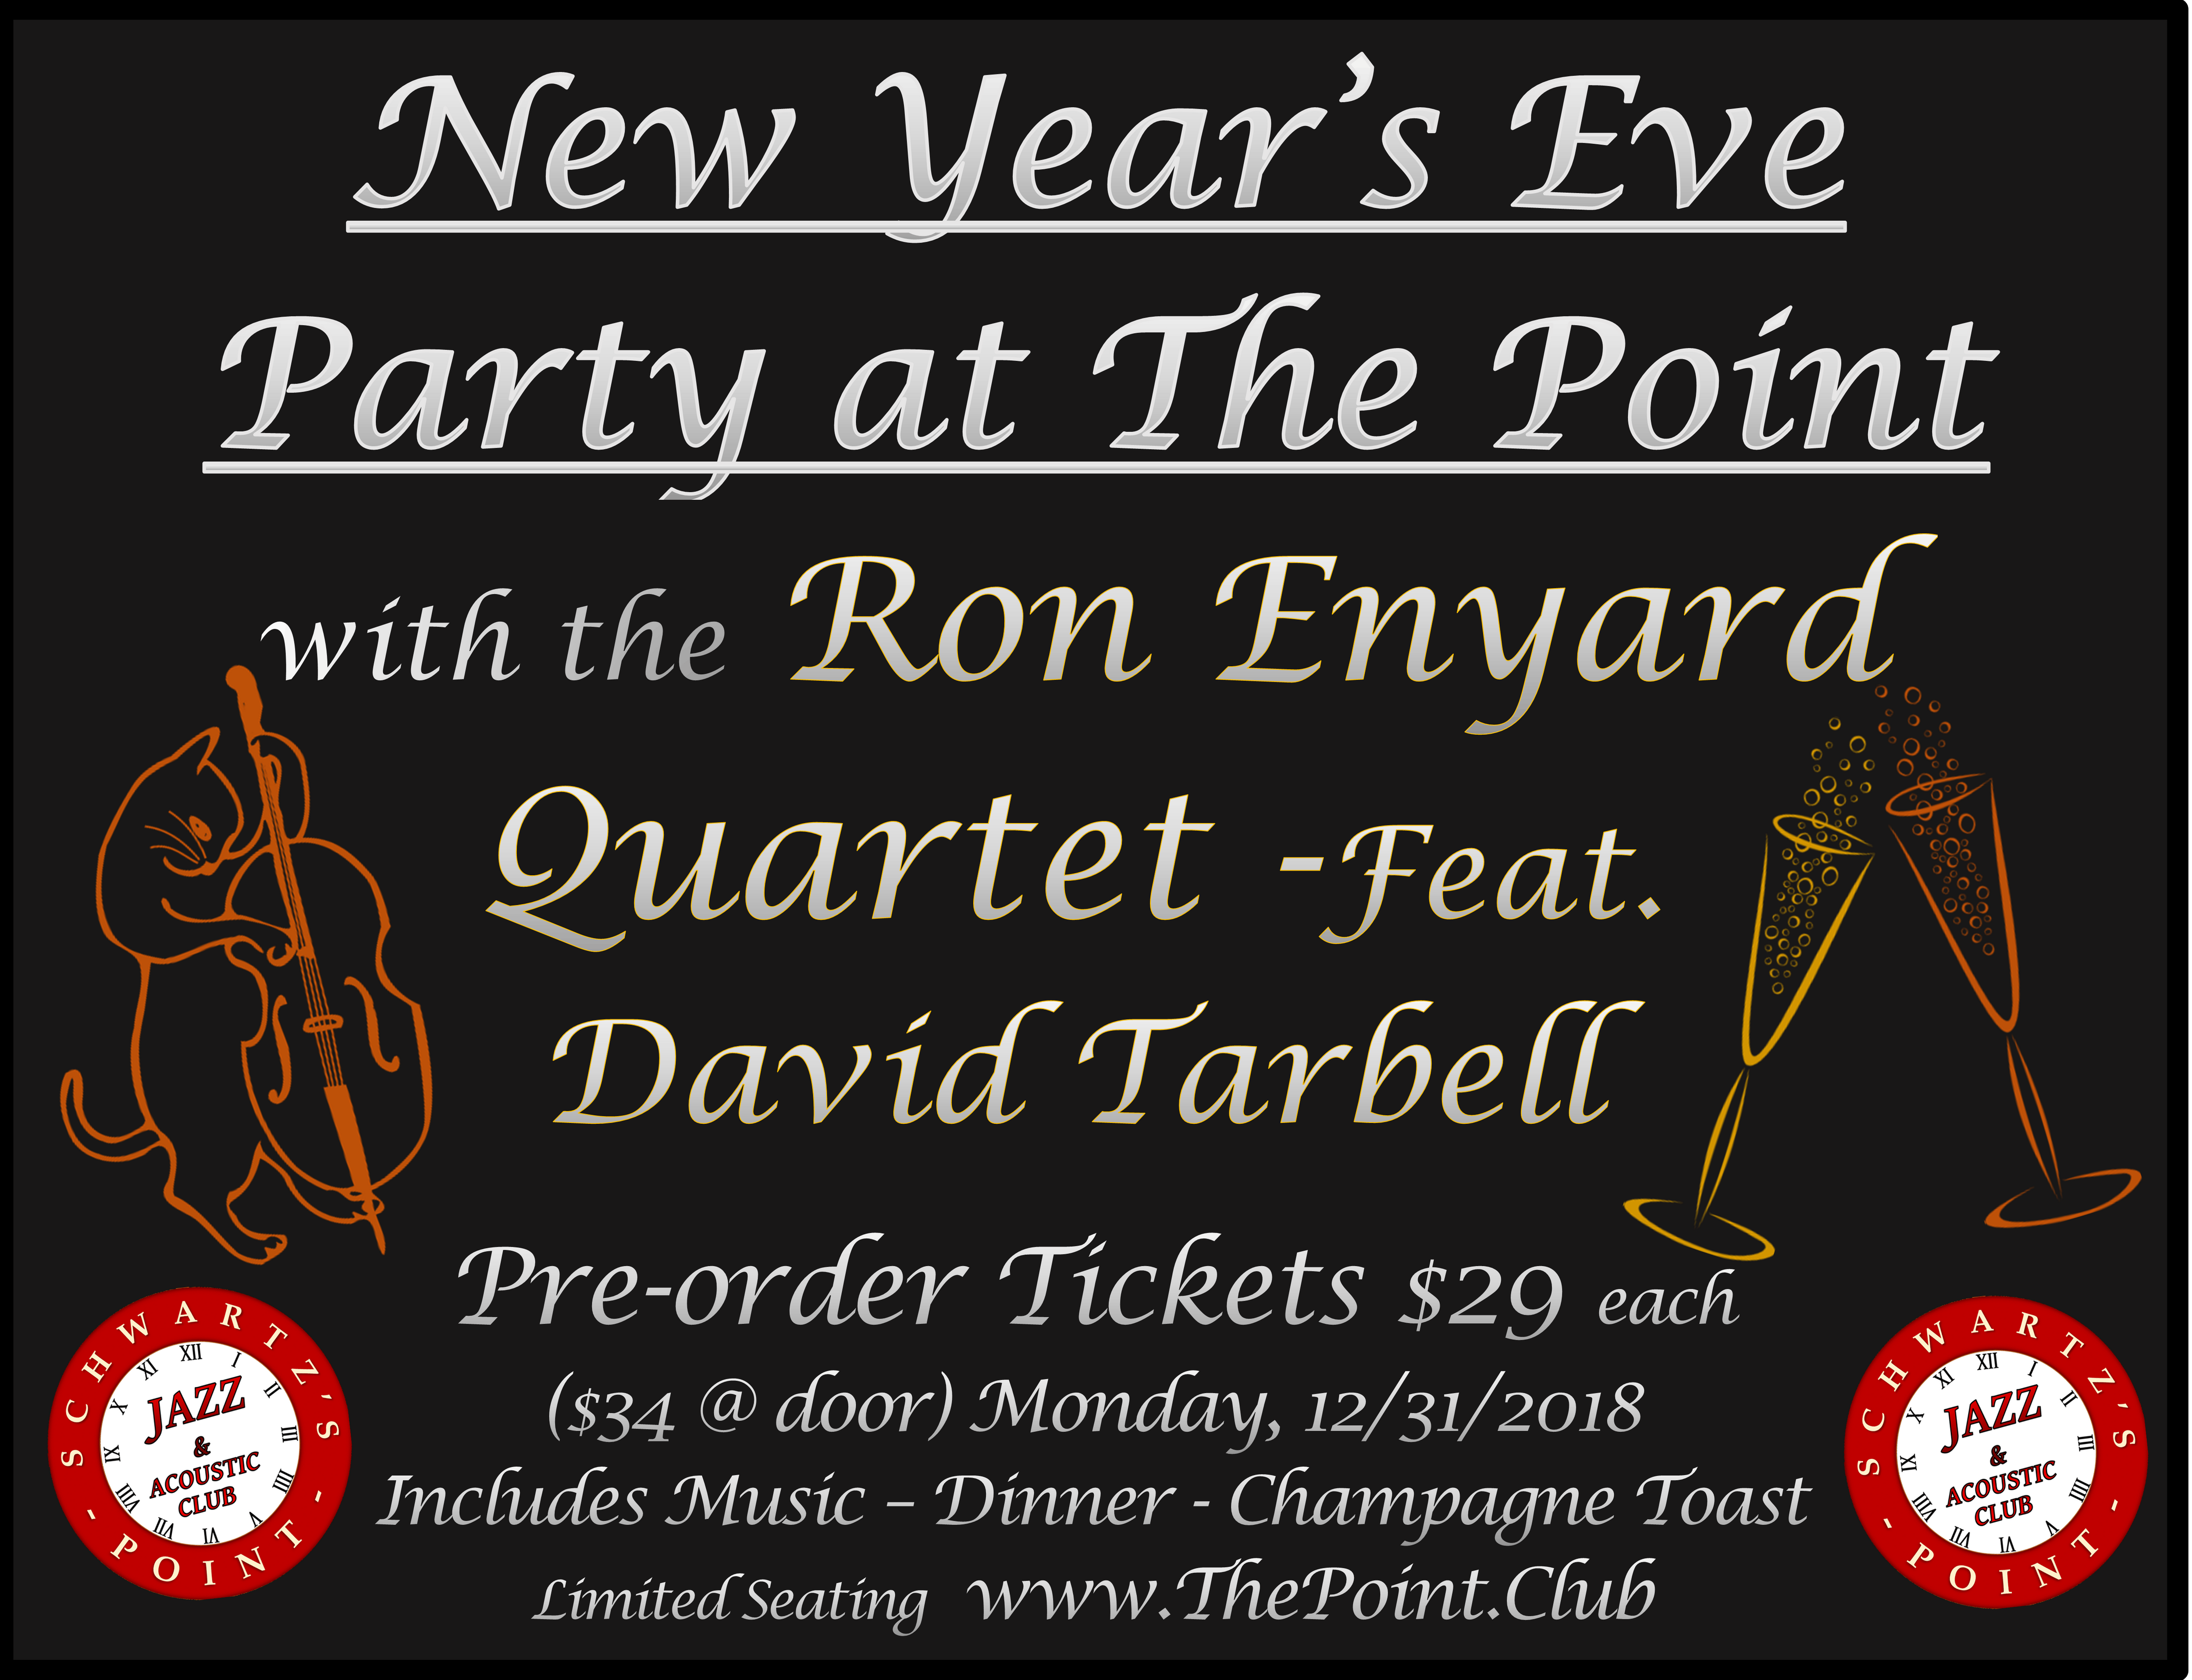 The Points New Years Eve Party with the Ron Enyard Quartet Feturing David Tarbell Vocals